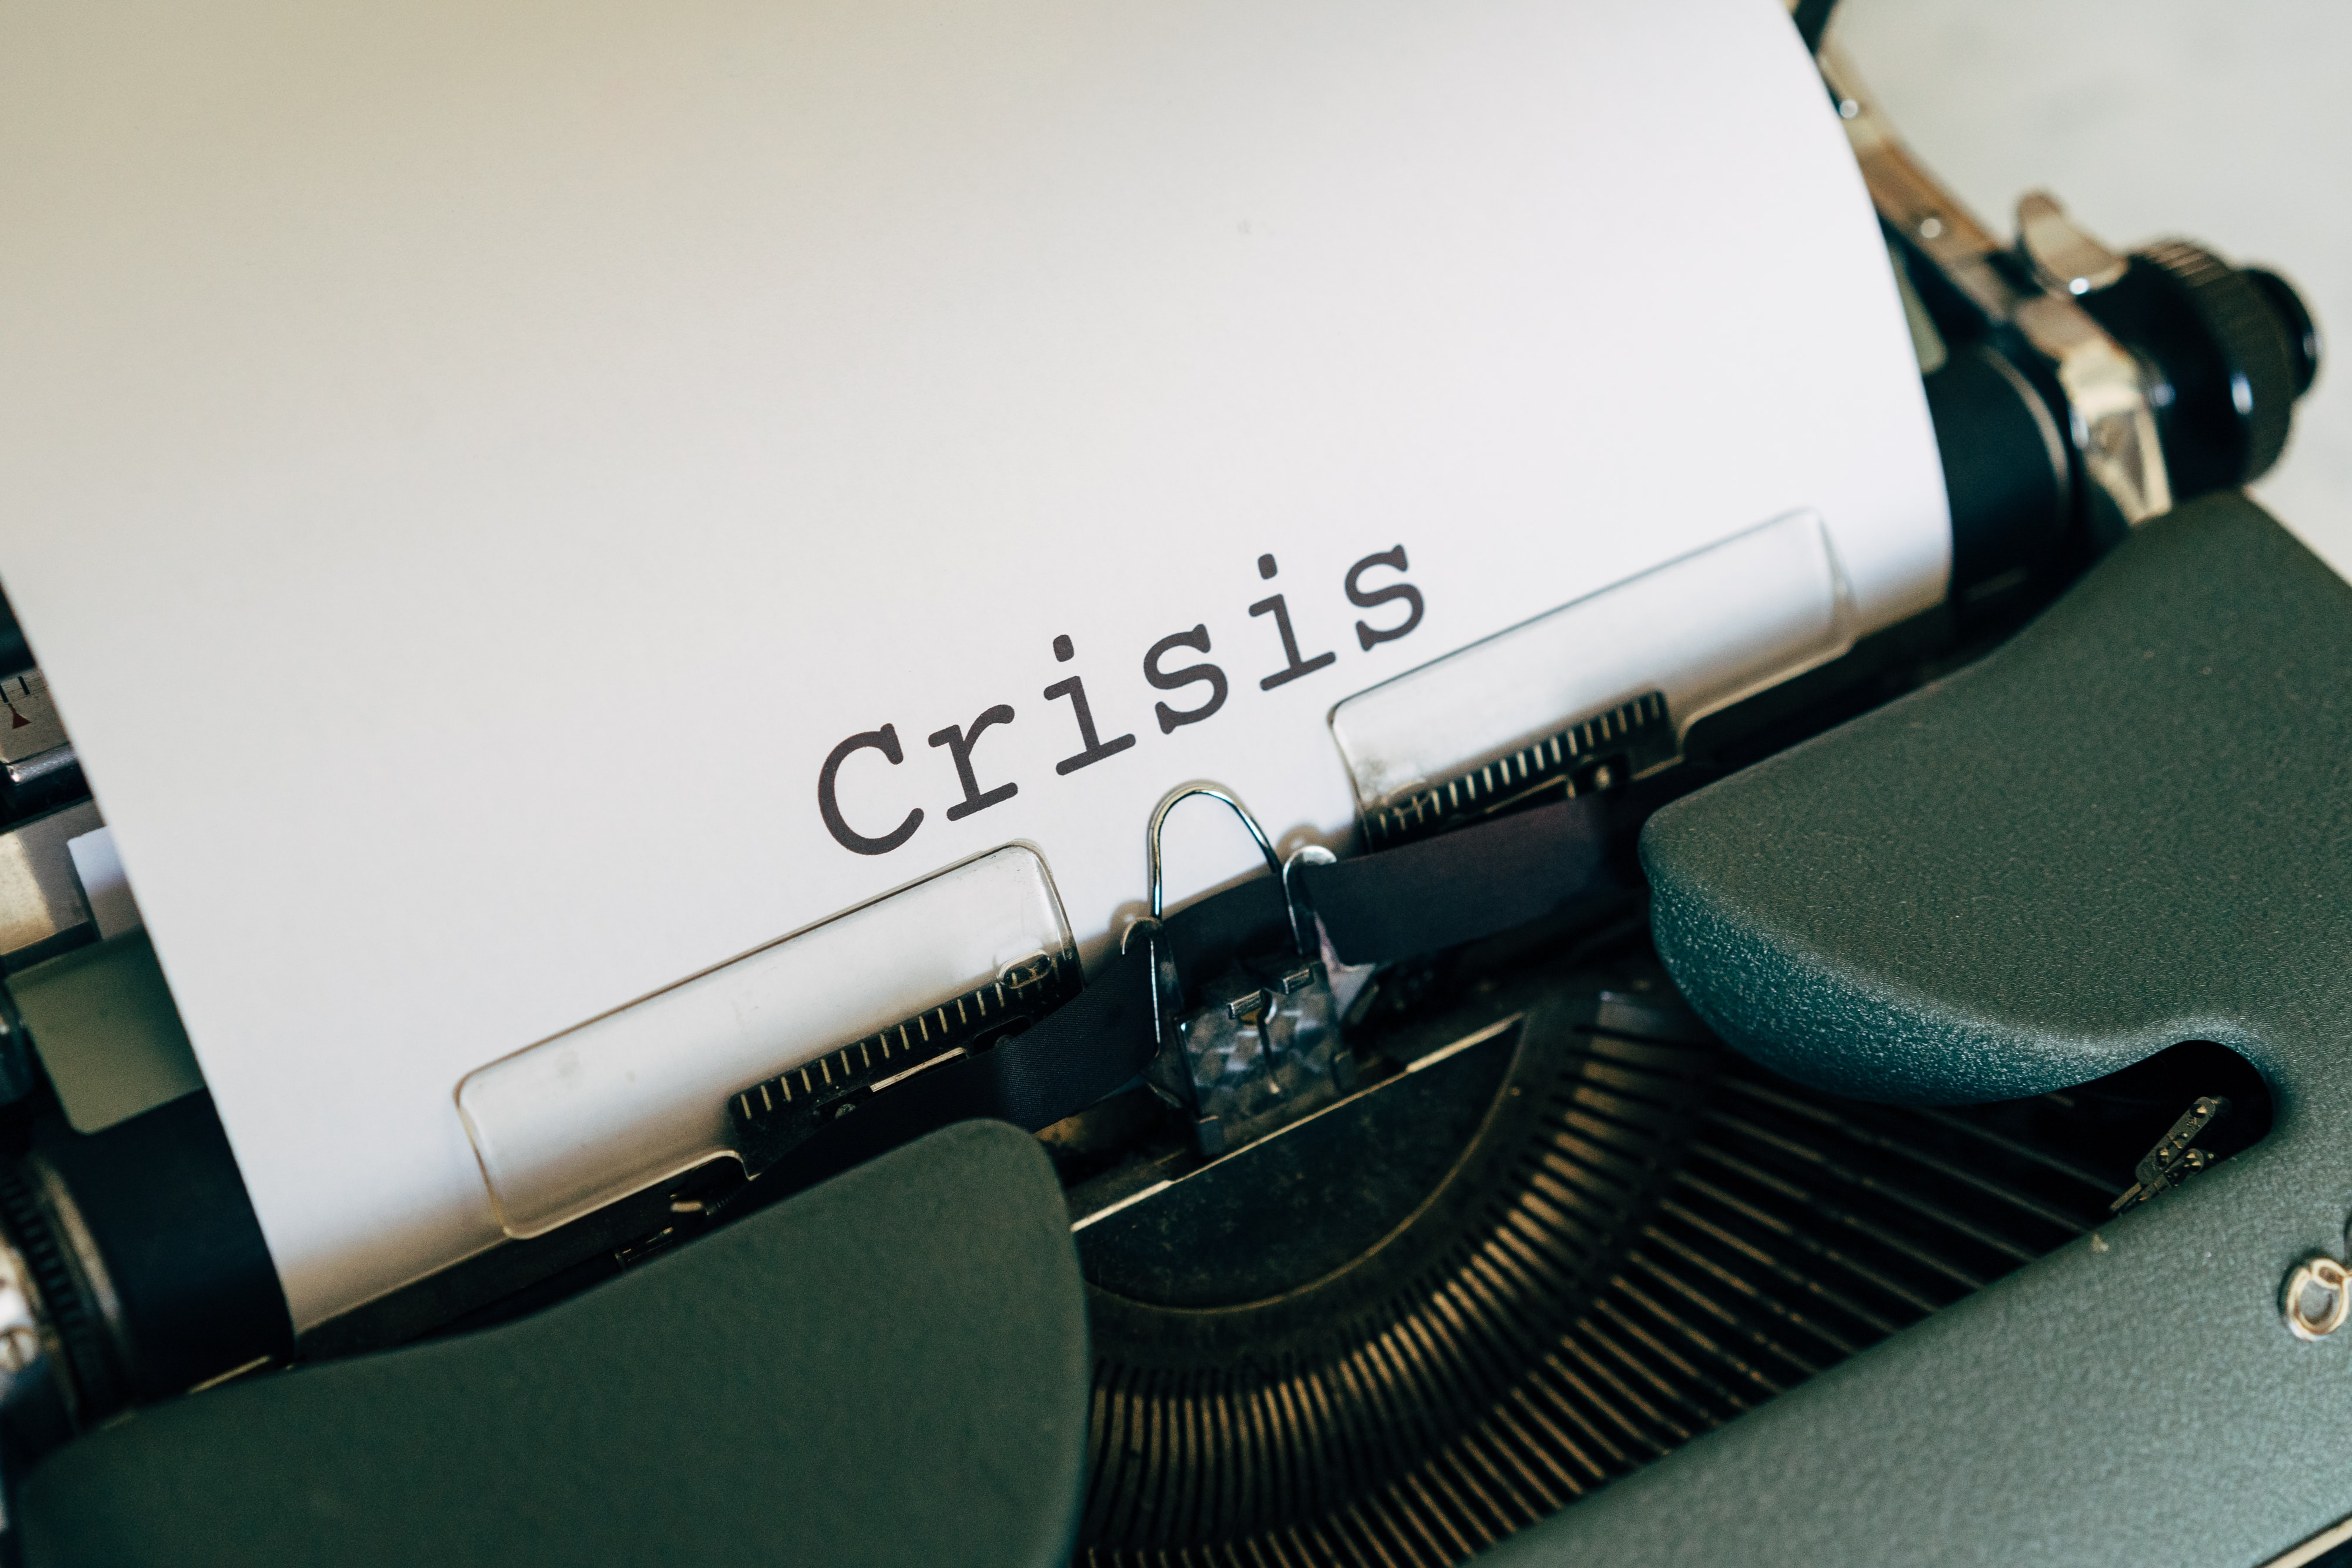 Students Need More Writing Practice to Reverse the Skills Crisis